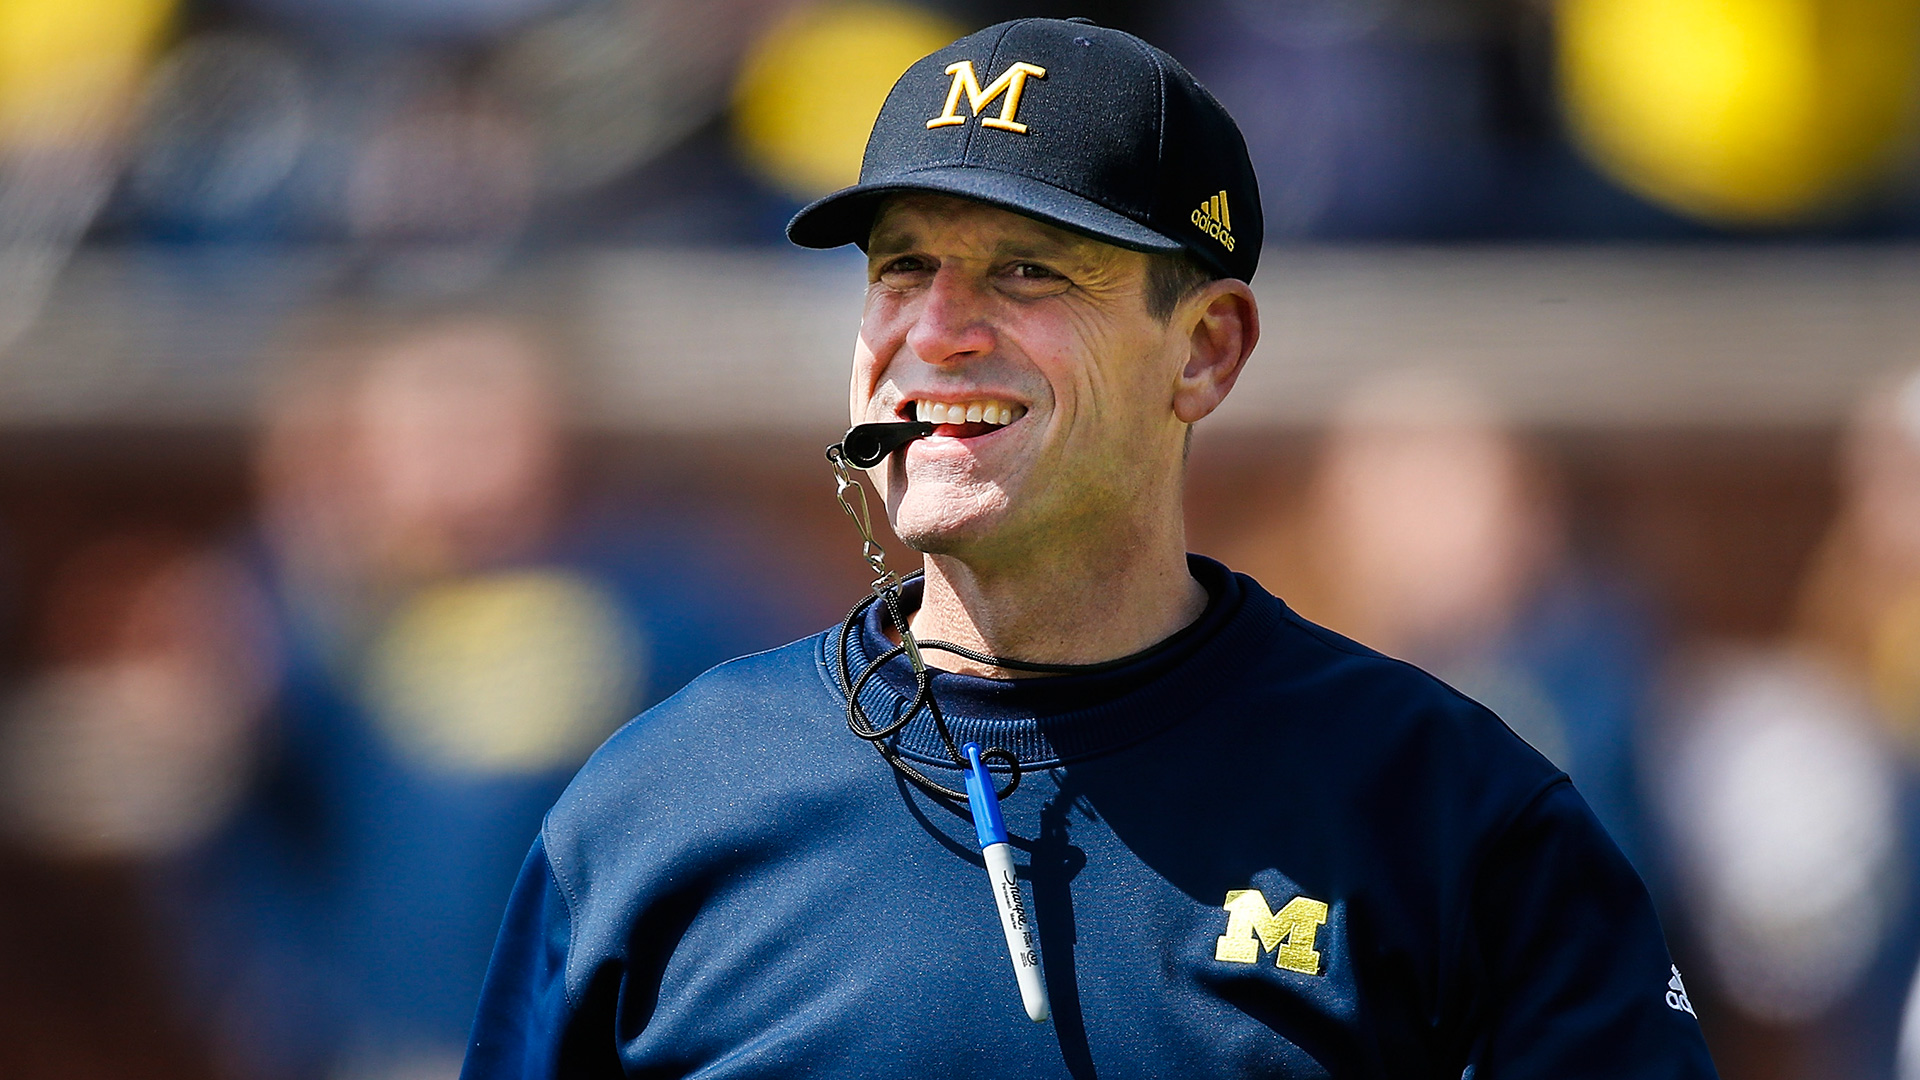 Michigan players picking up summer jobs under Jim Harbaugh